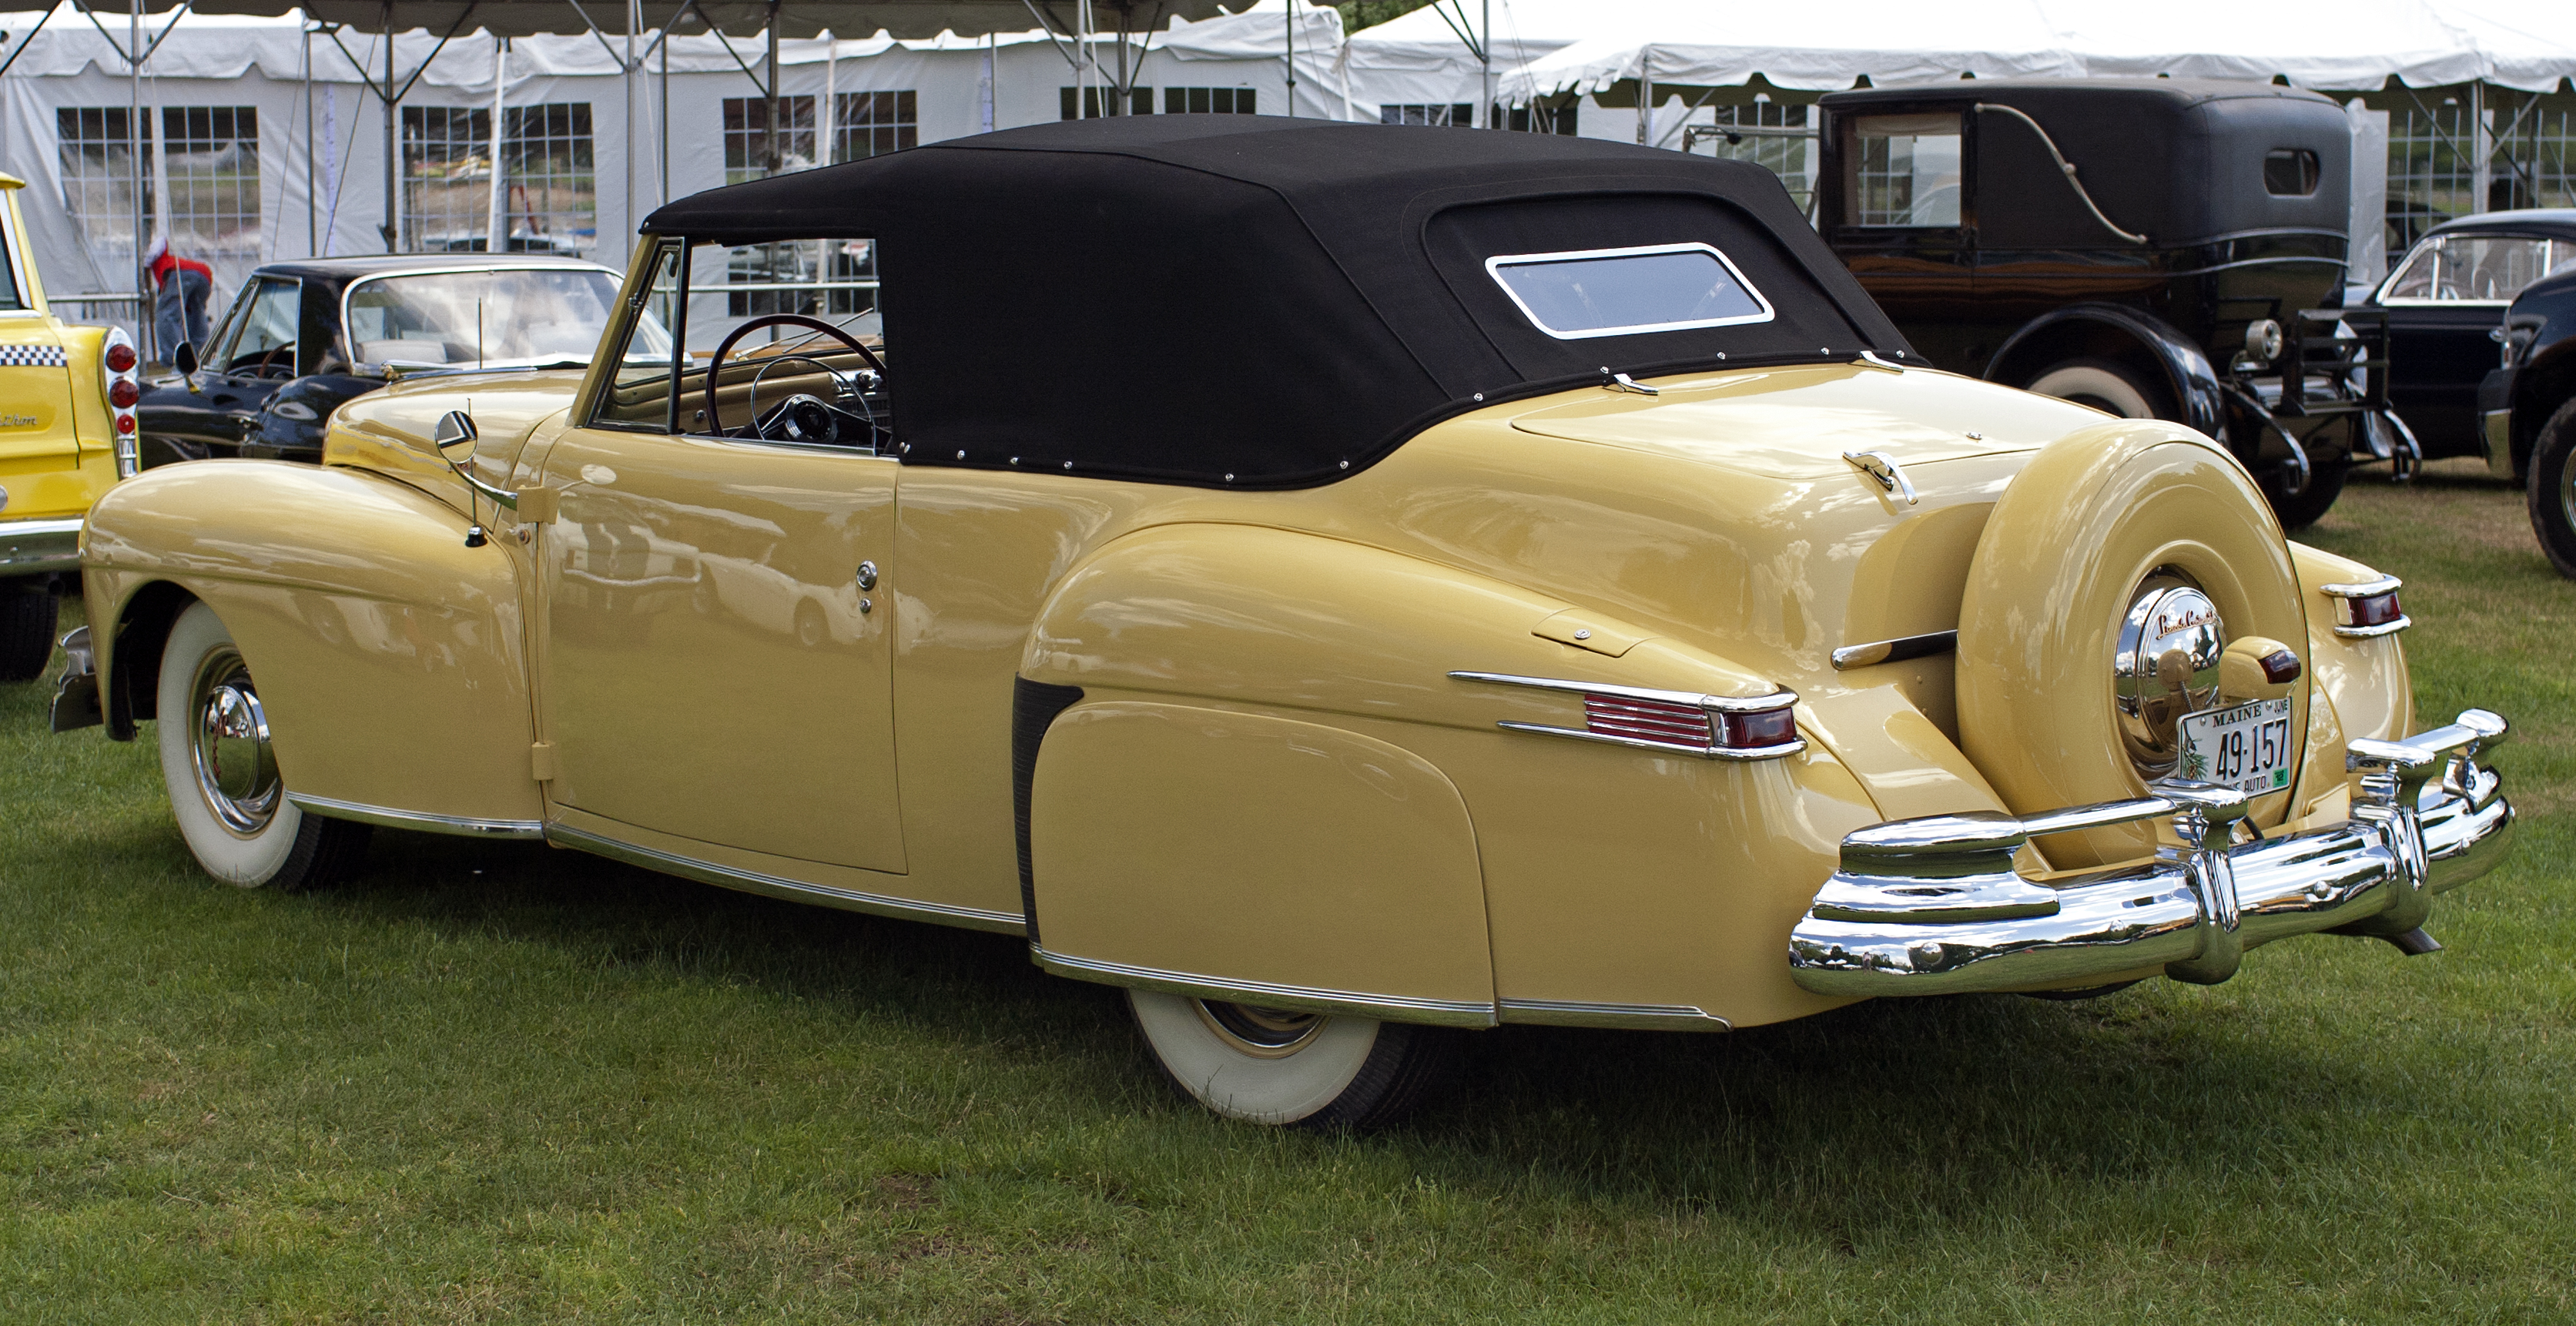 file 1948 lincoln continental v12 cabriolet wikimedia commons. Black Bedroom Furniture Sets. Home Design Ideas